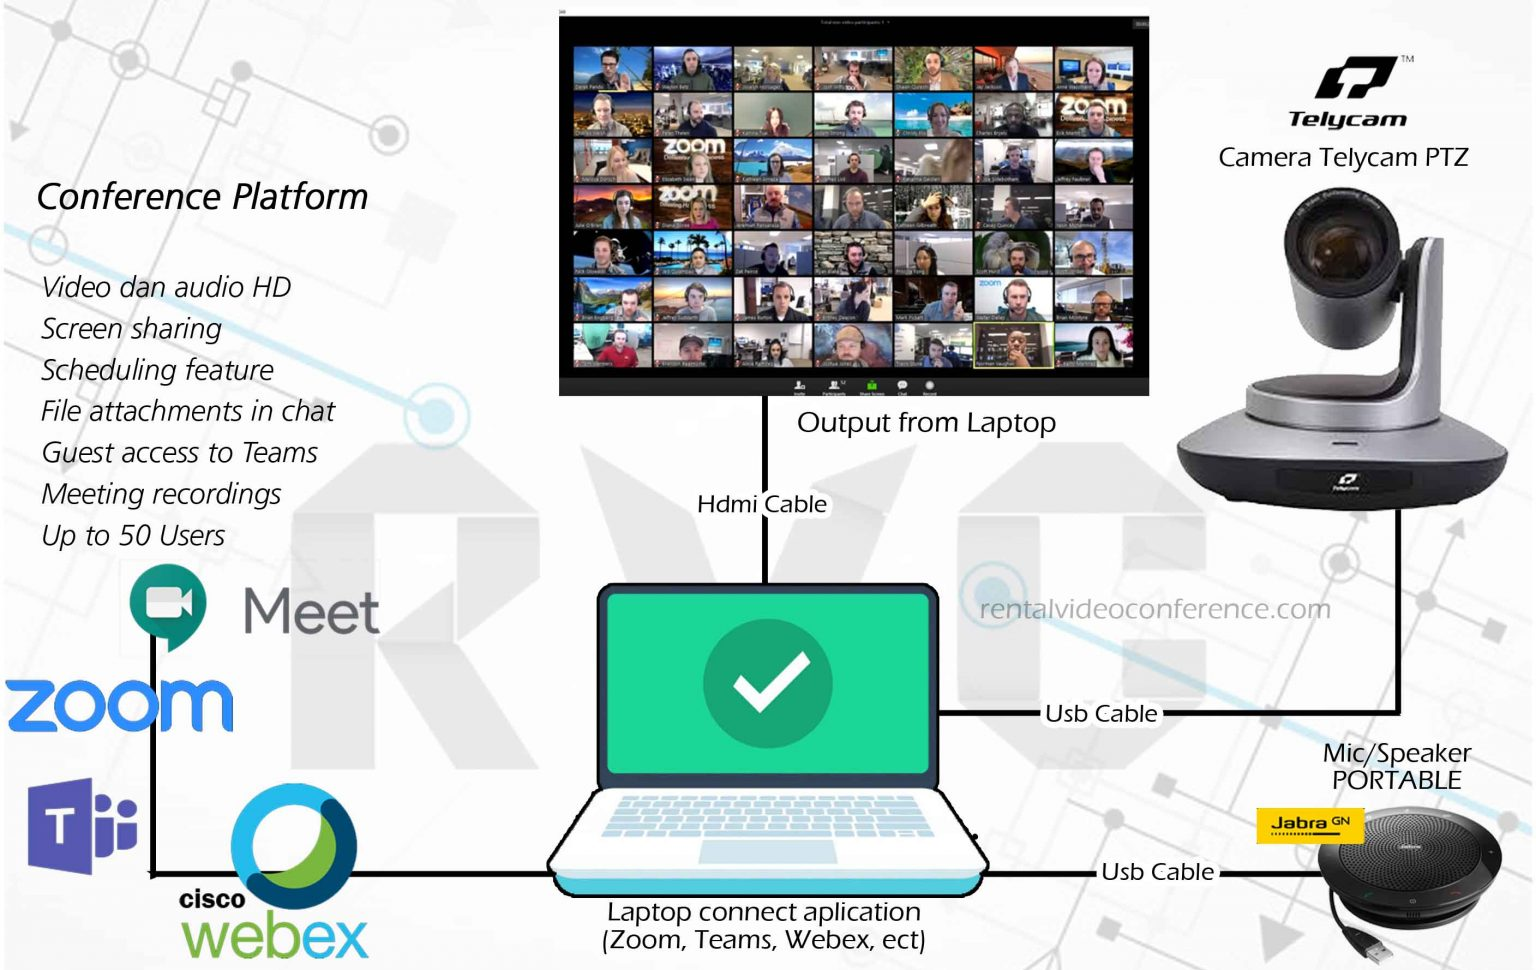 Harga Rental Video Conference Pancoran Mas